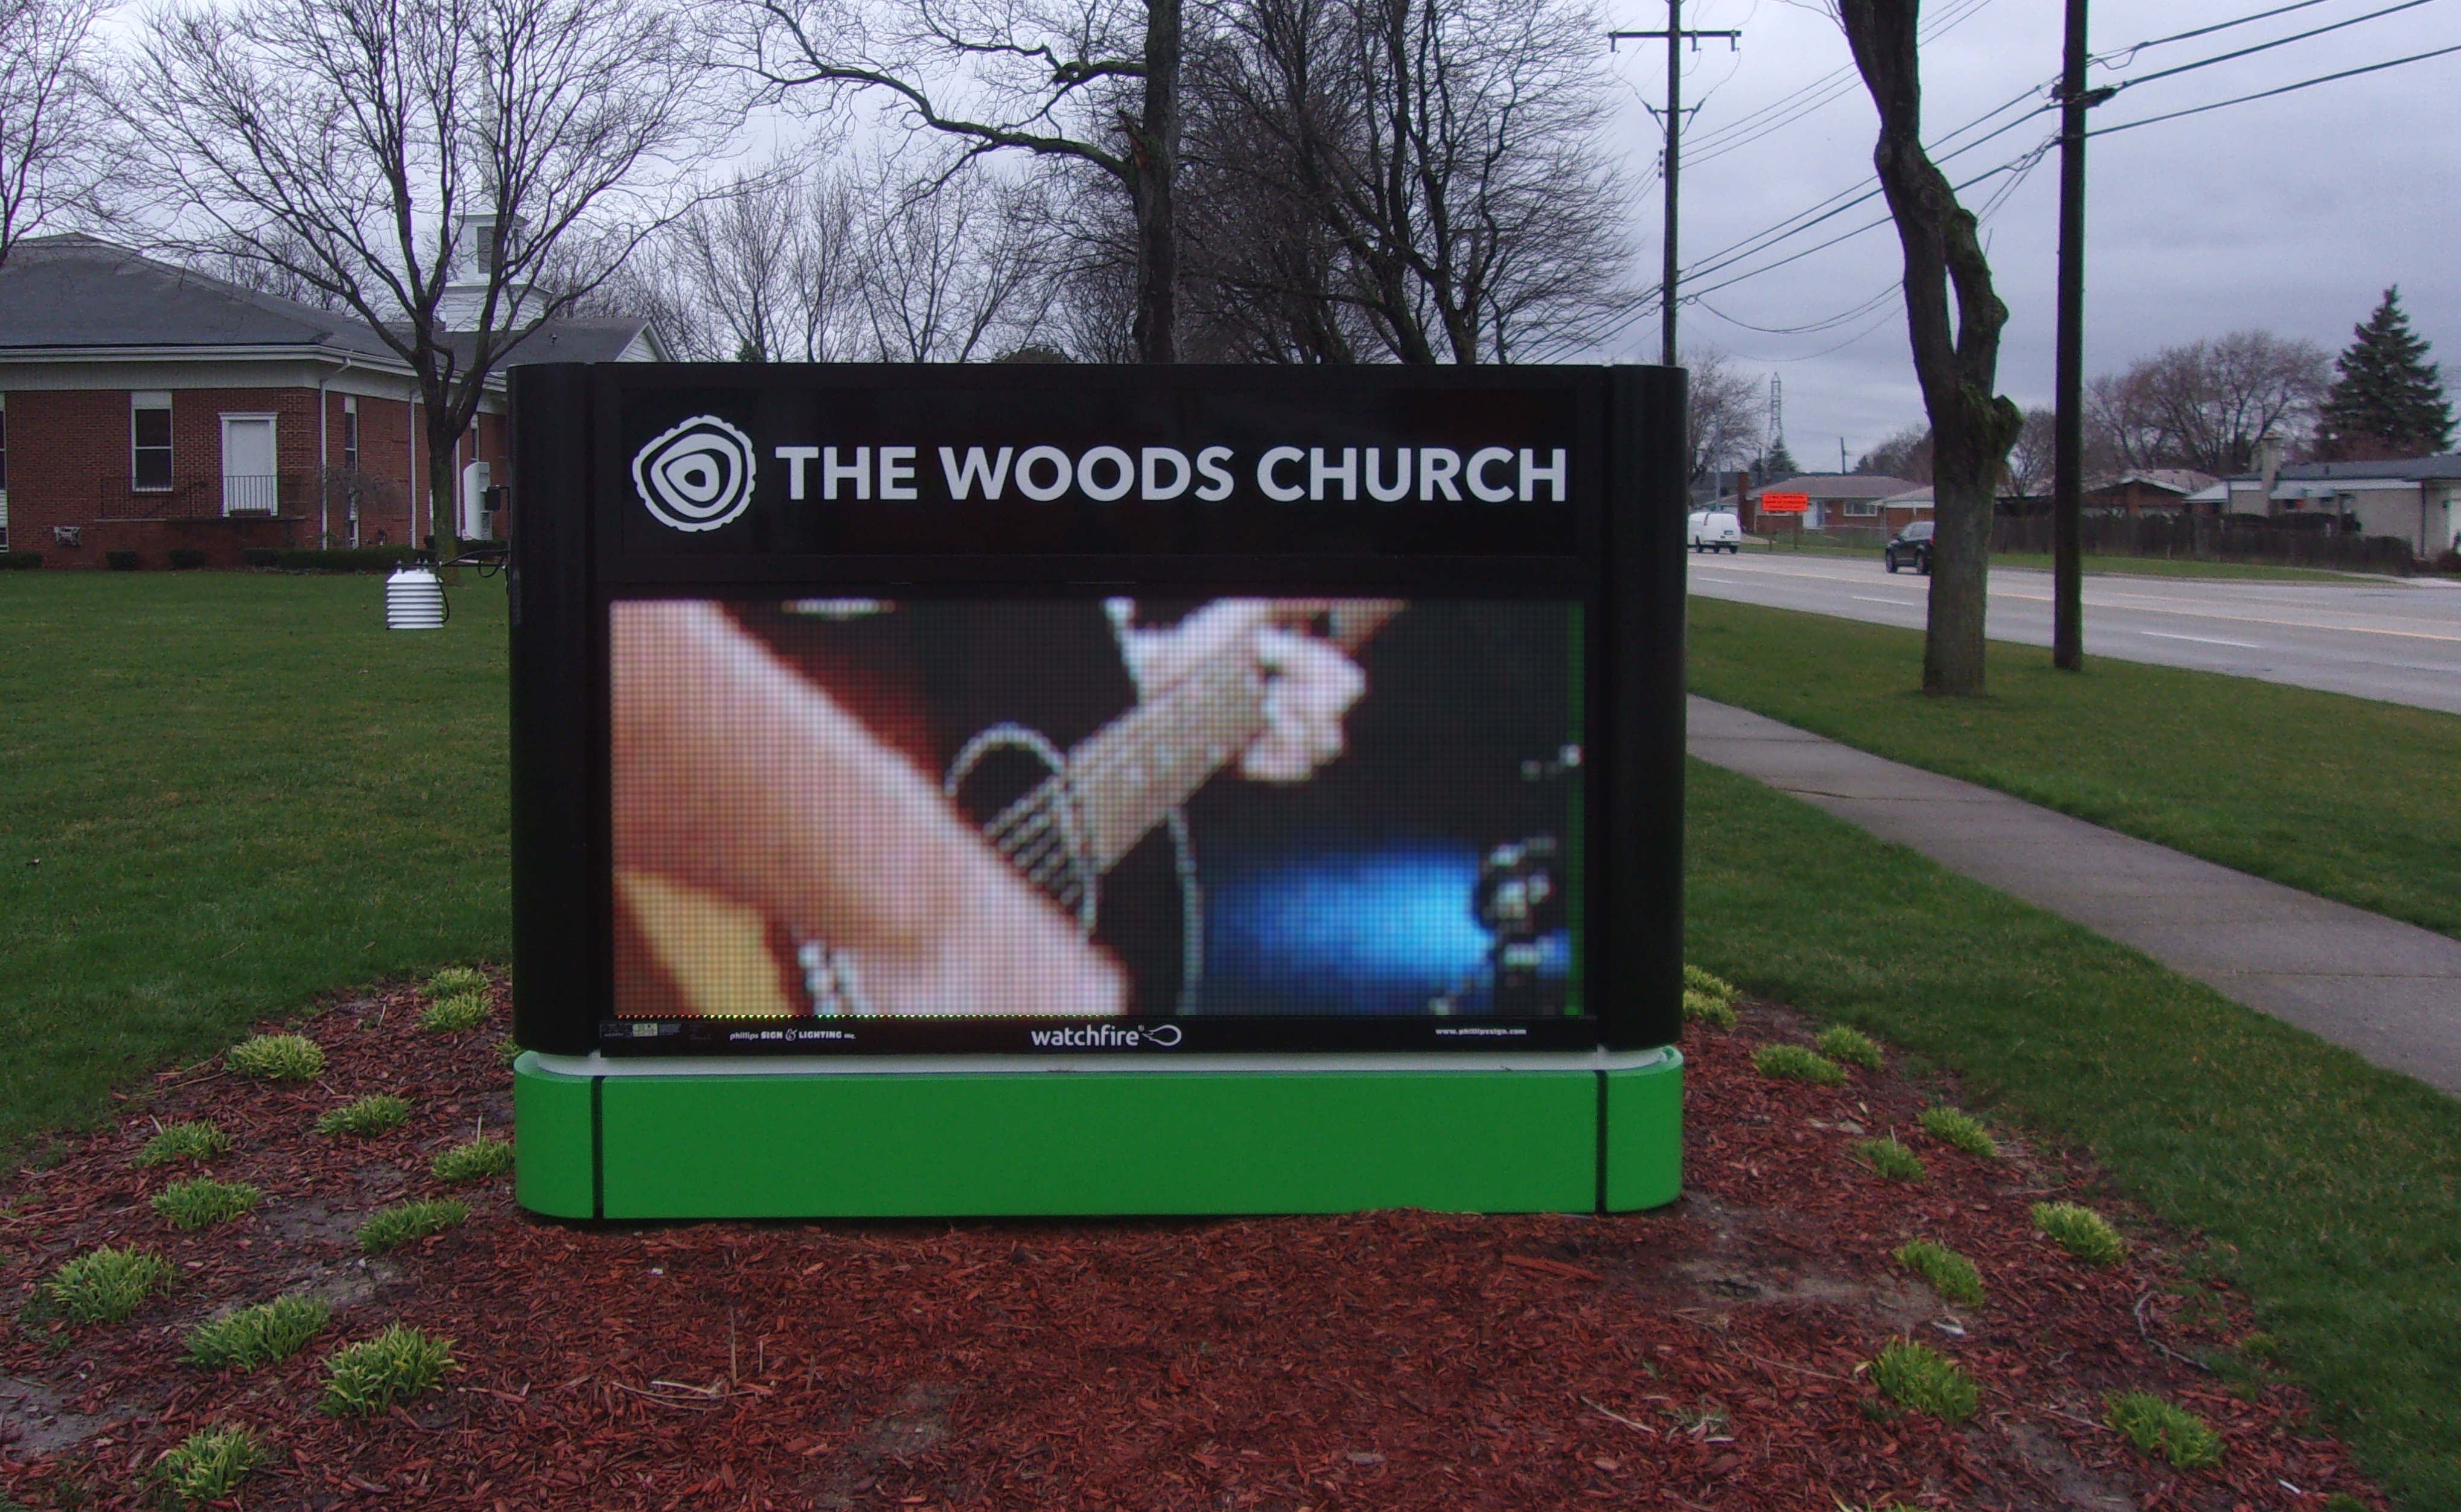 The Woods Church